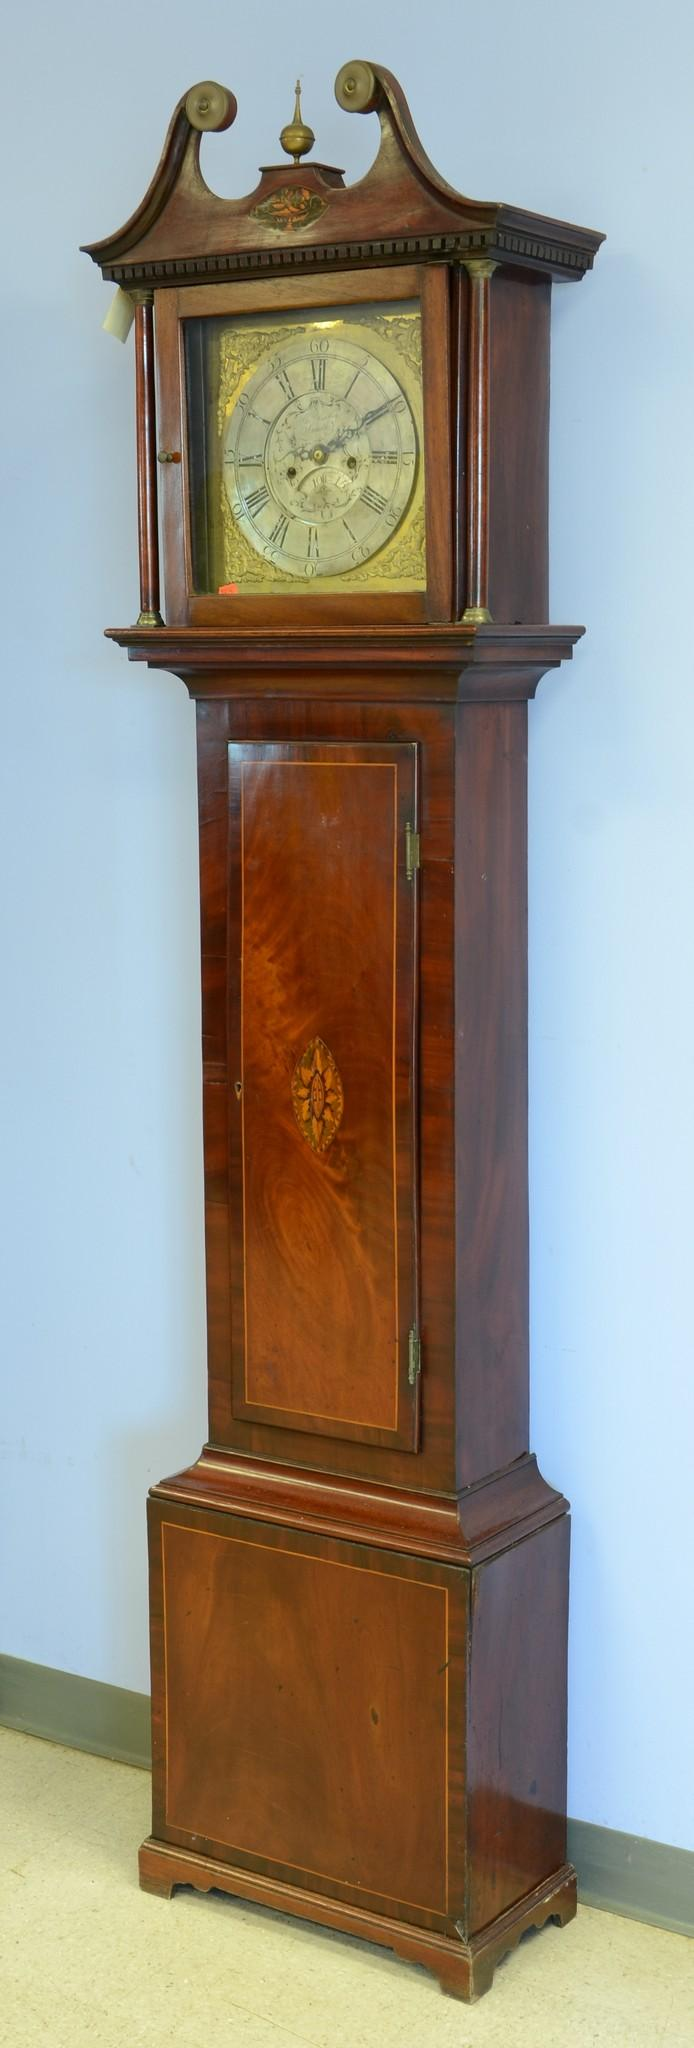 Inlaid mahogany English tall clock by Thomas Hartley, Snaith, Yorkshire, chapter ring needs to be refastened to dial,  inlaid crest...